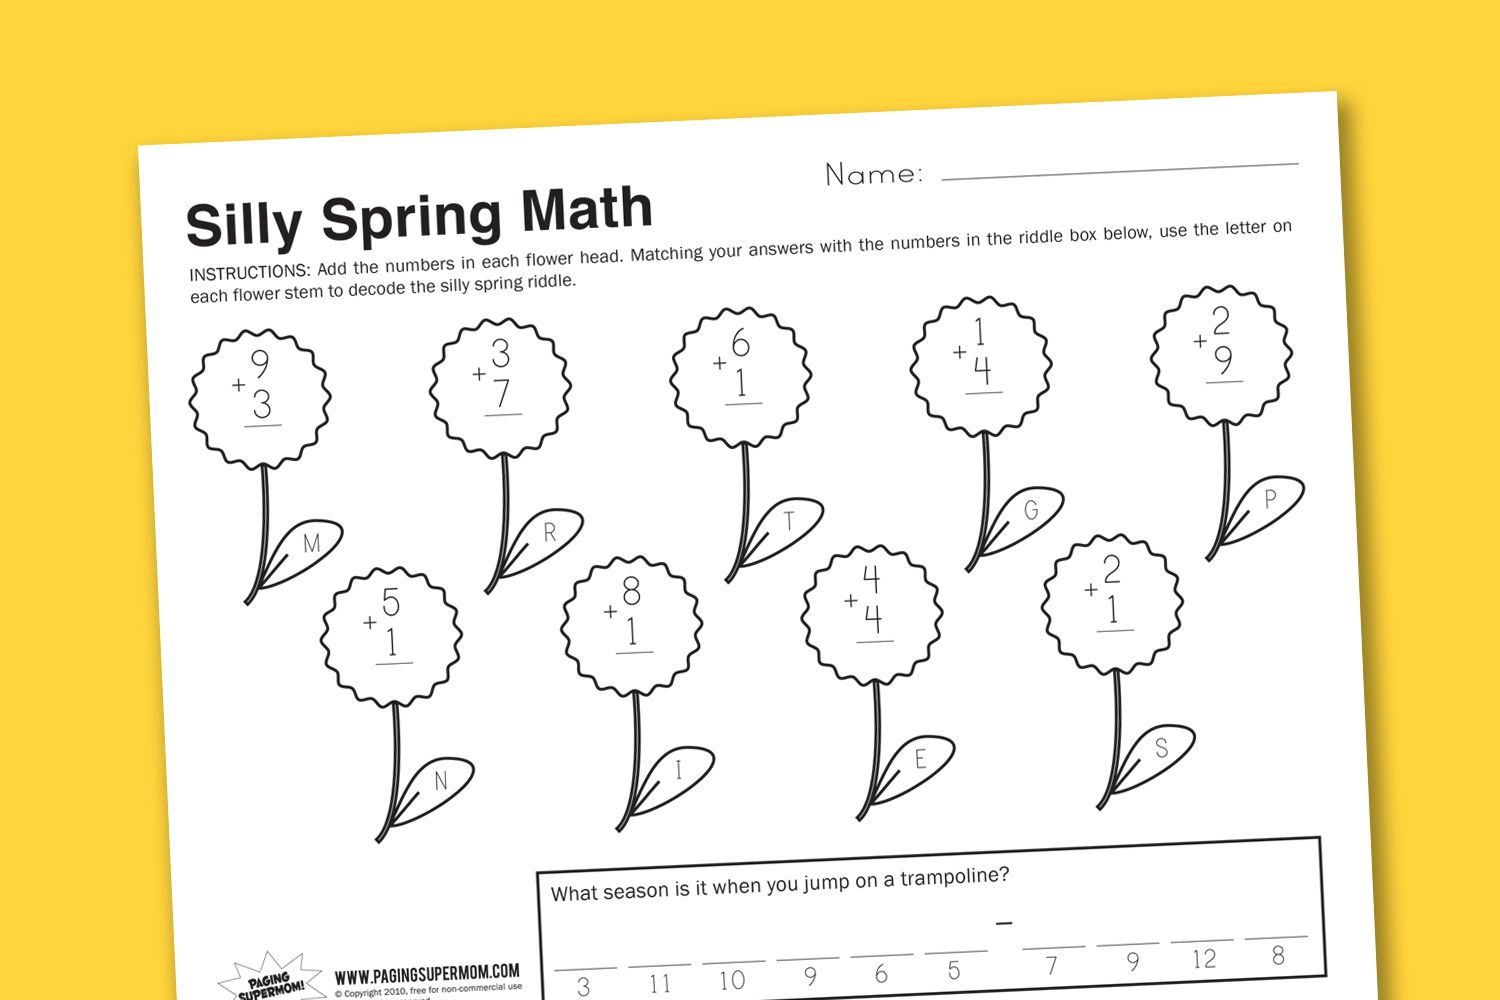 Silly Spring Math Printable Worksheet